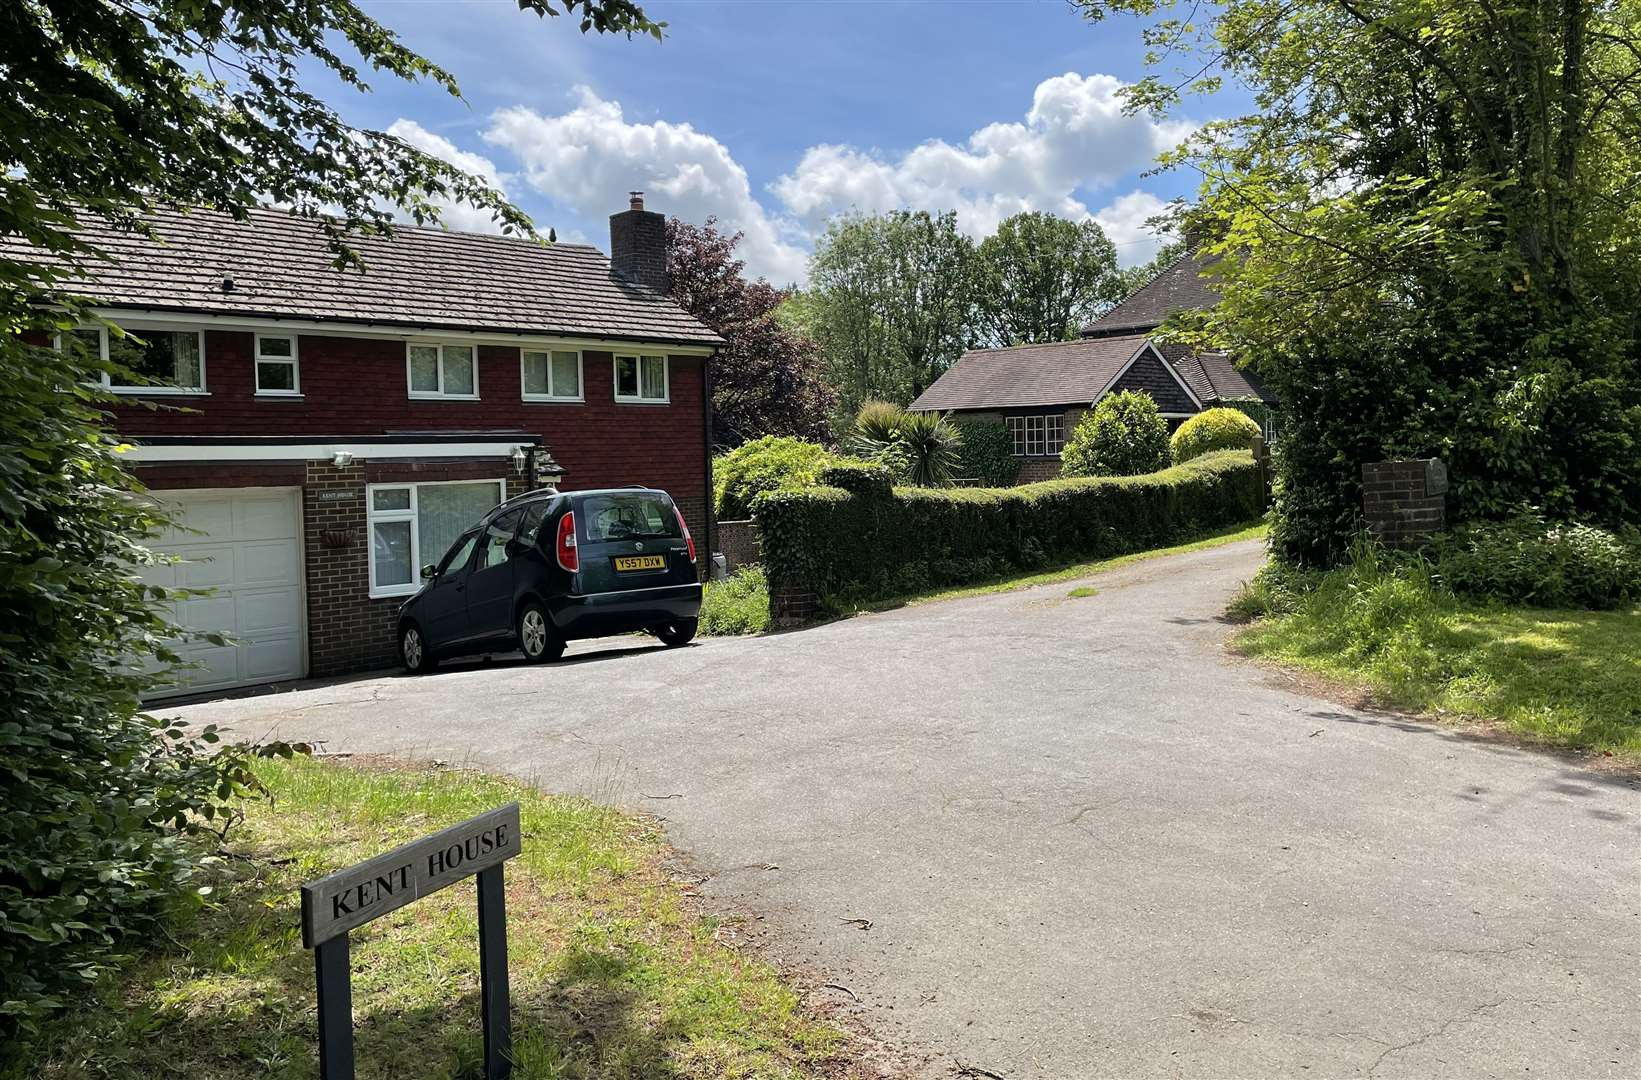 Two detached homes off the A28 will make way for the care home